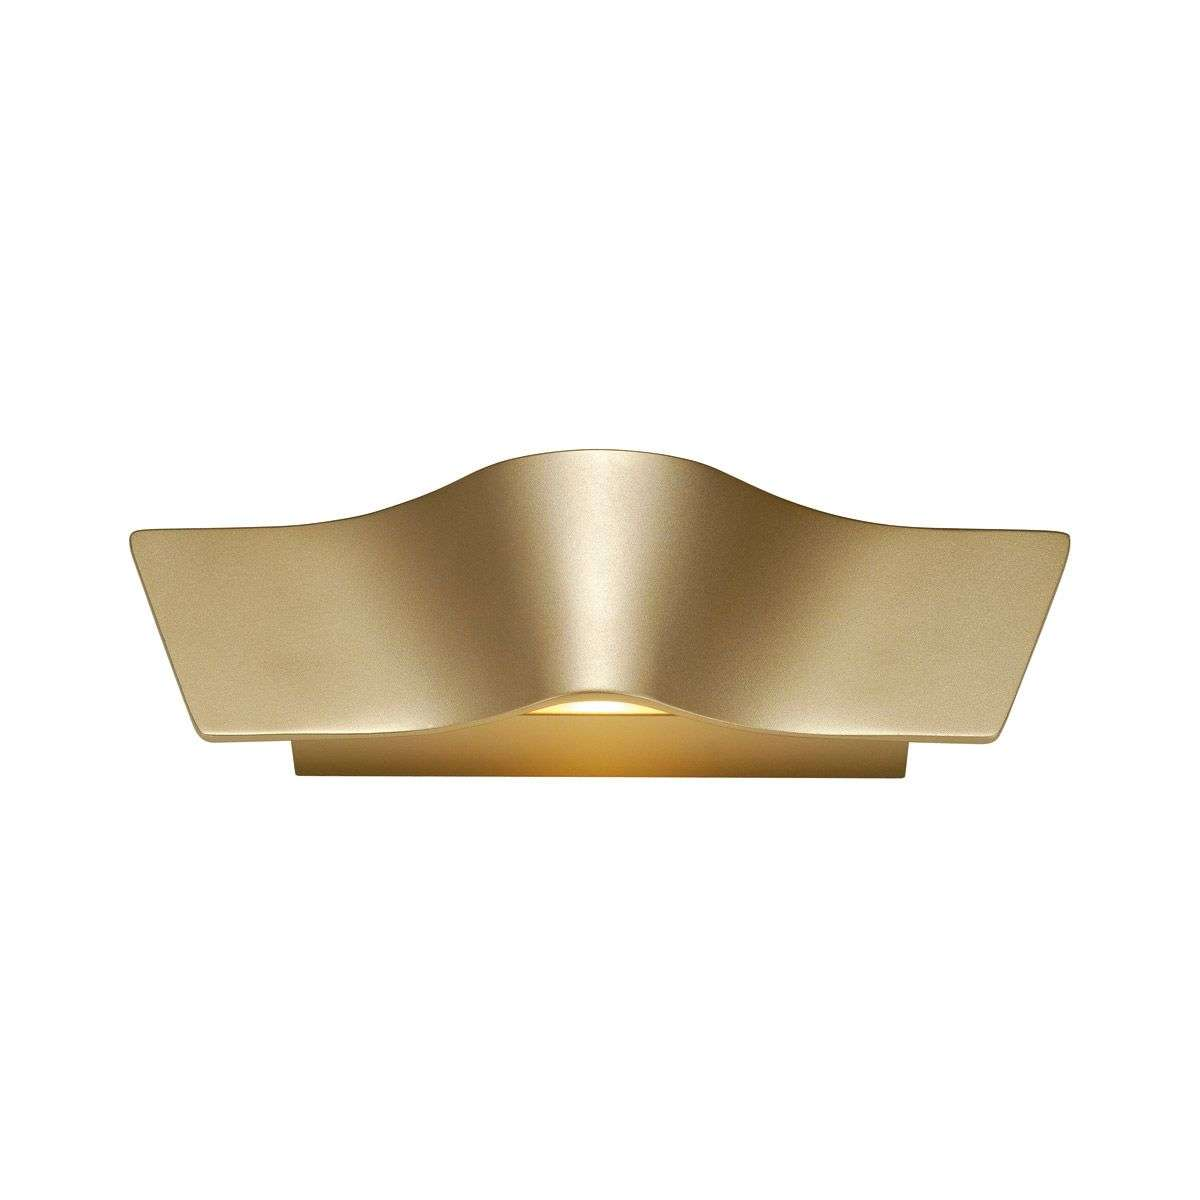 LED wandlamp Wave in mooie messing-5504604-31